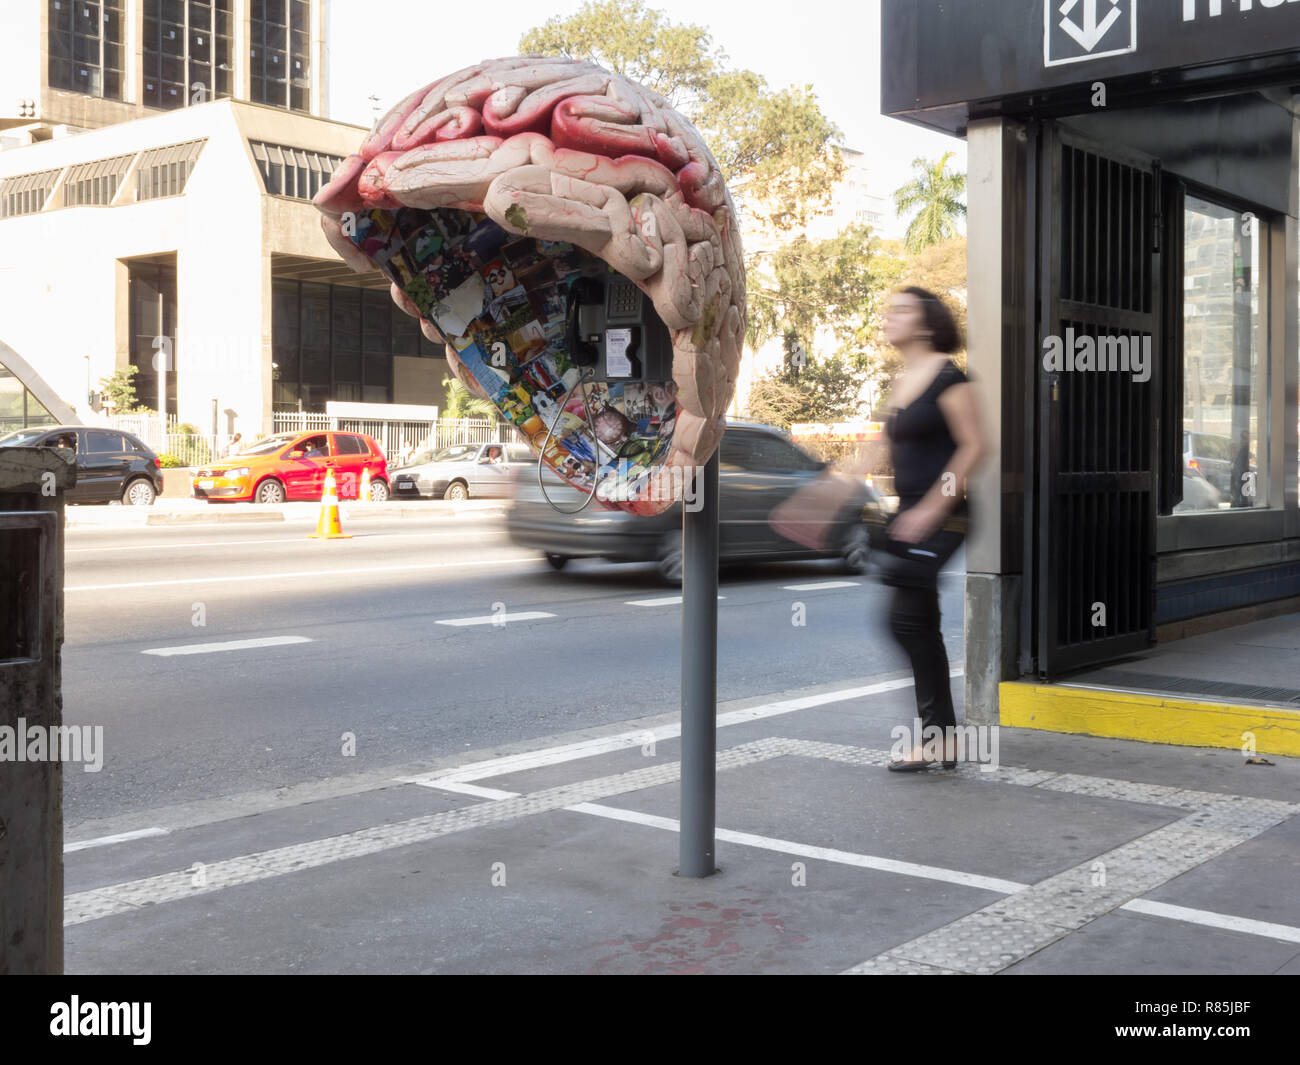 "Passerby walks past behind giant brain-shaped phone booth street art installation, as part of ""Call Parade"", Avenida Paulista, Sao Paulo, Brazil - Stock Image"